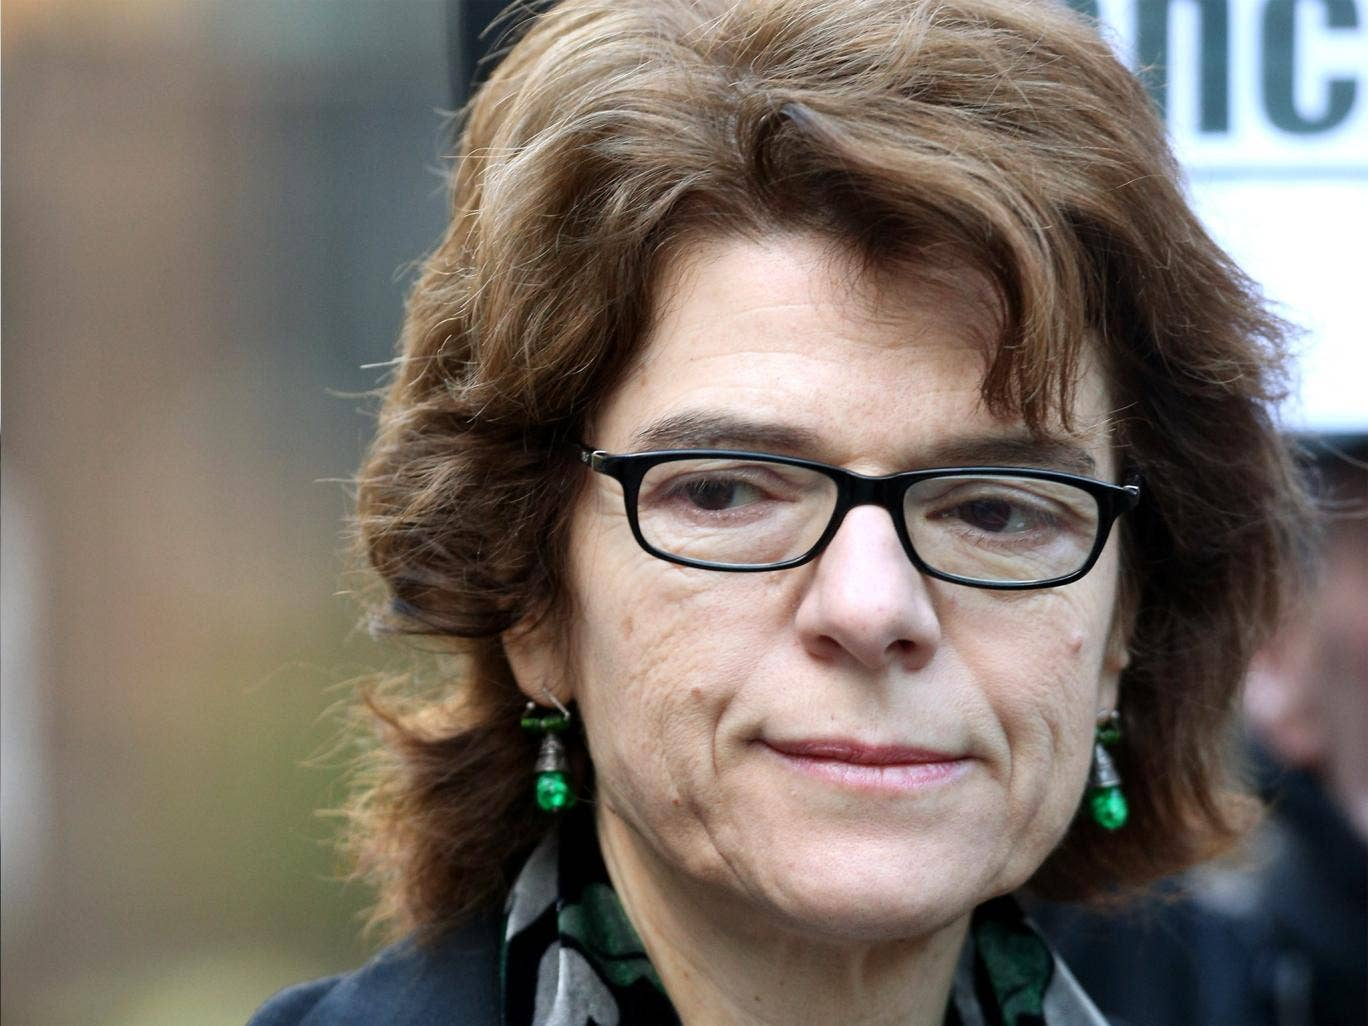 Vicky Pryce took her ex-husband's penalty points for speeding